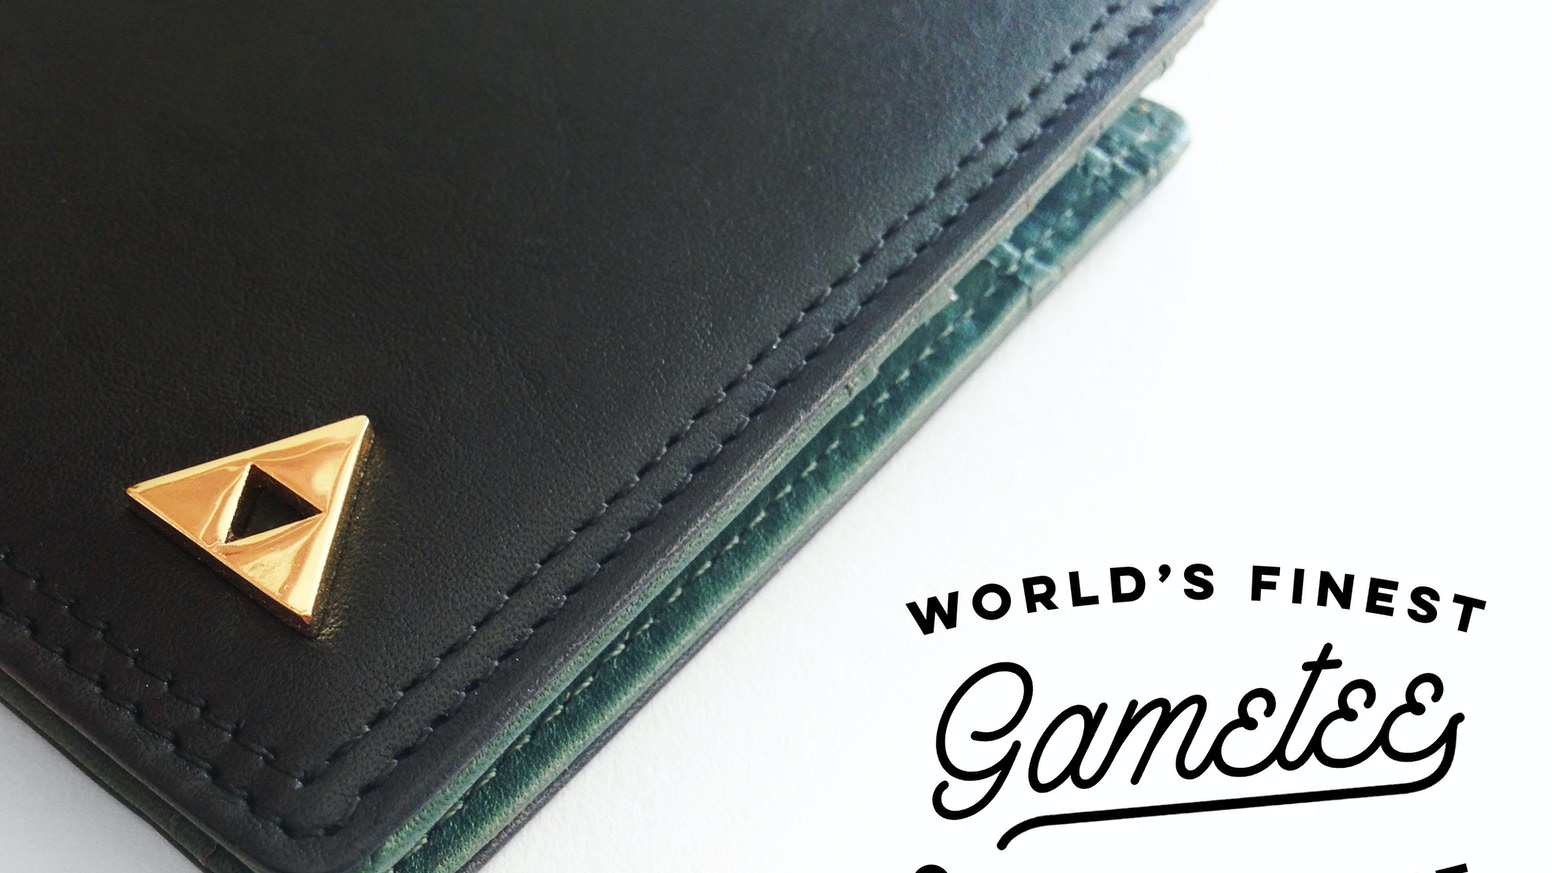 Inspired by one of the most legendary video games in history, we have created the world's finest grade one leather wallet for gamers.